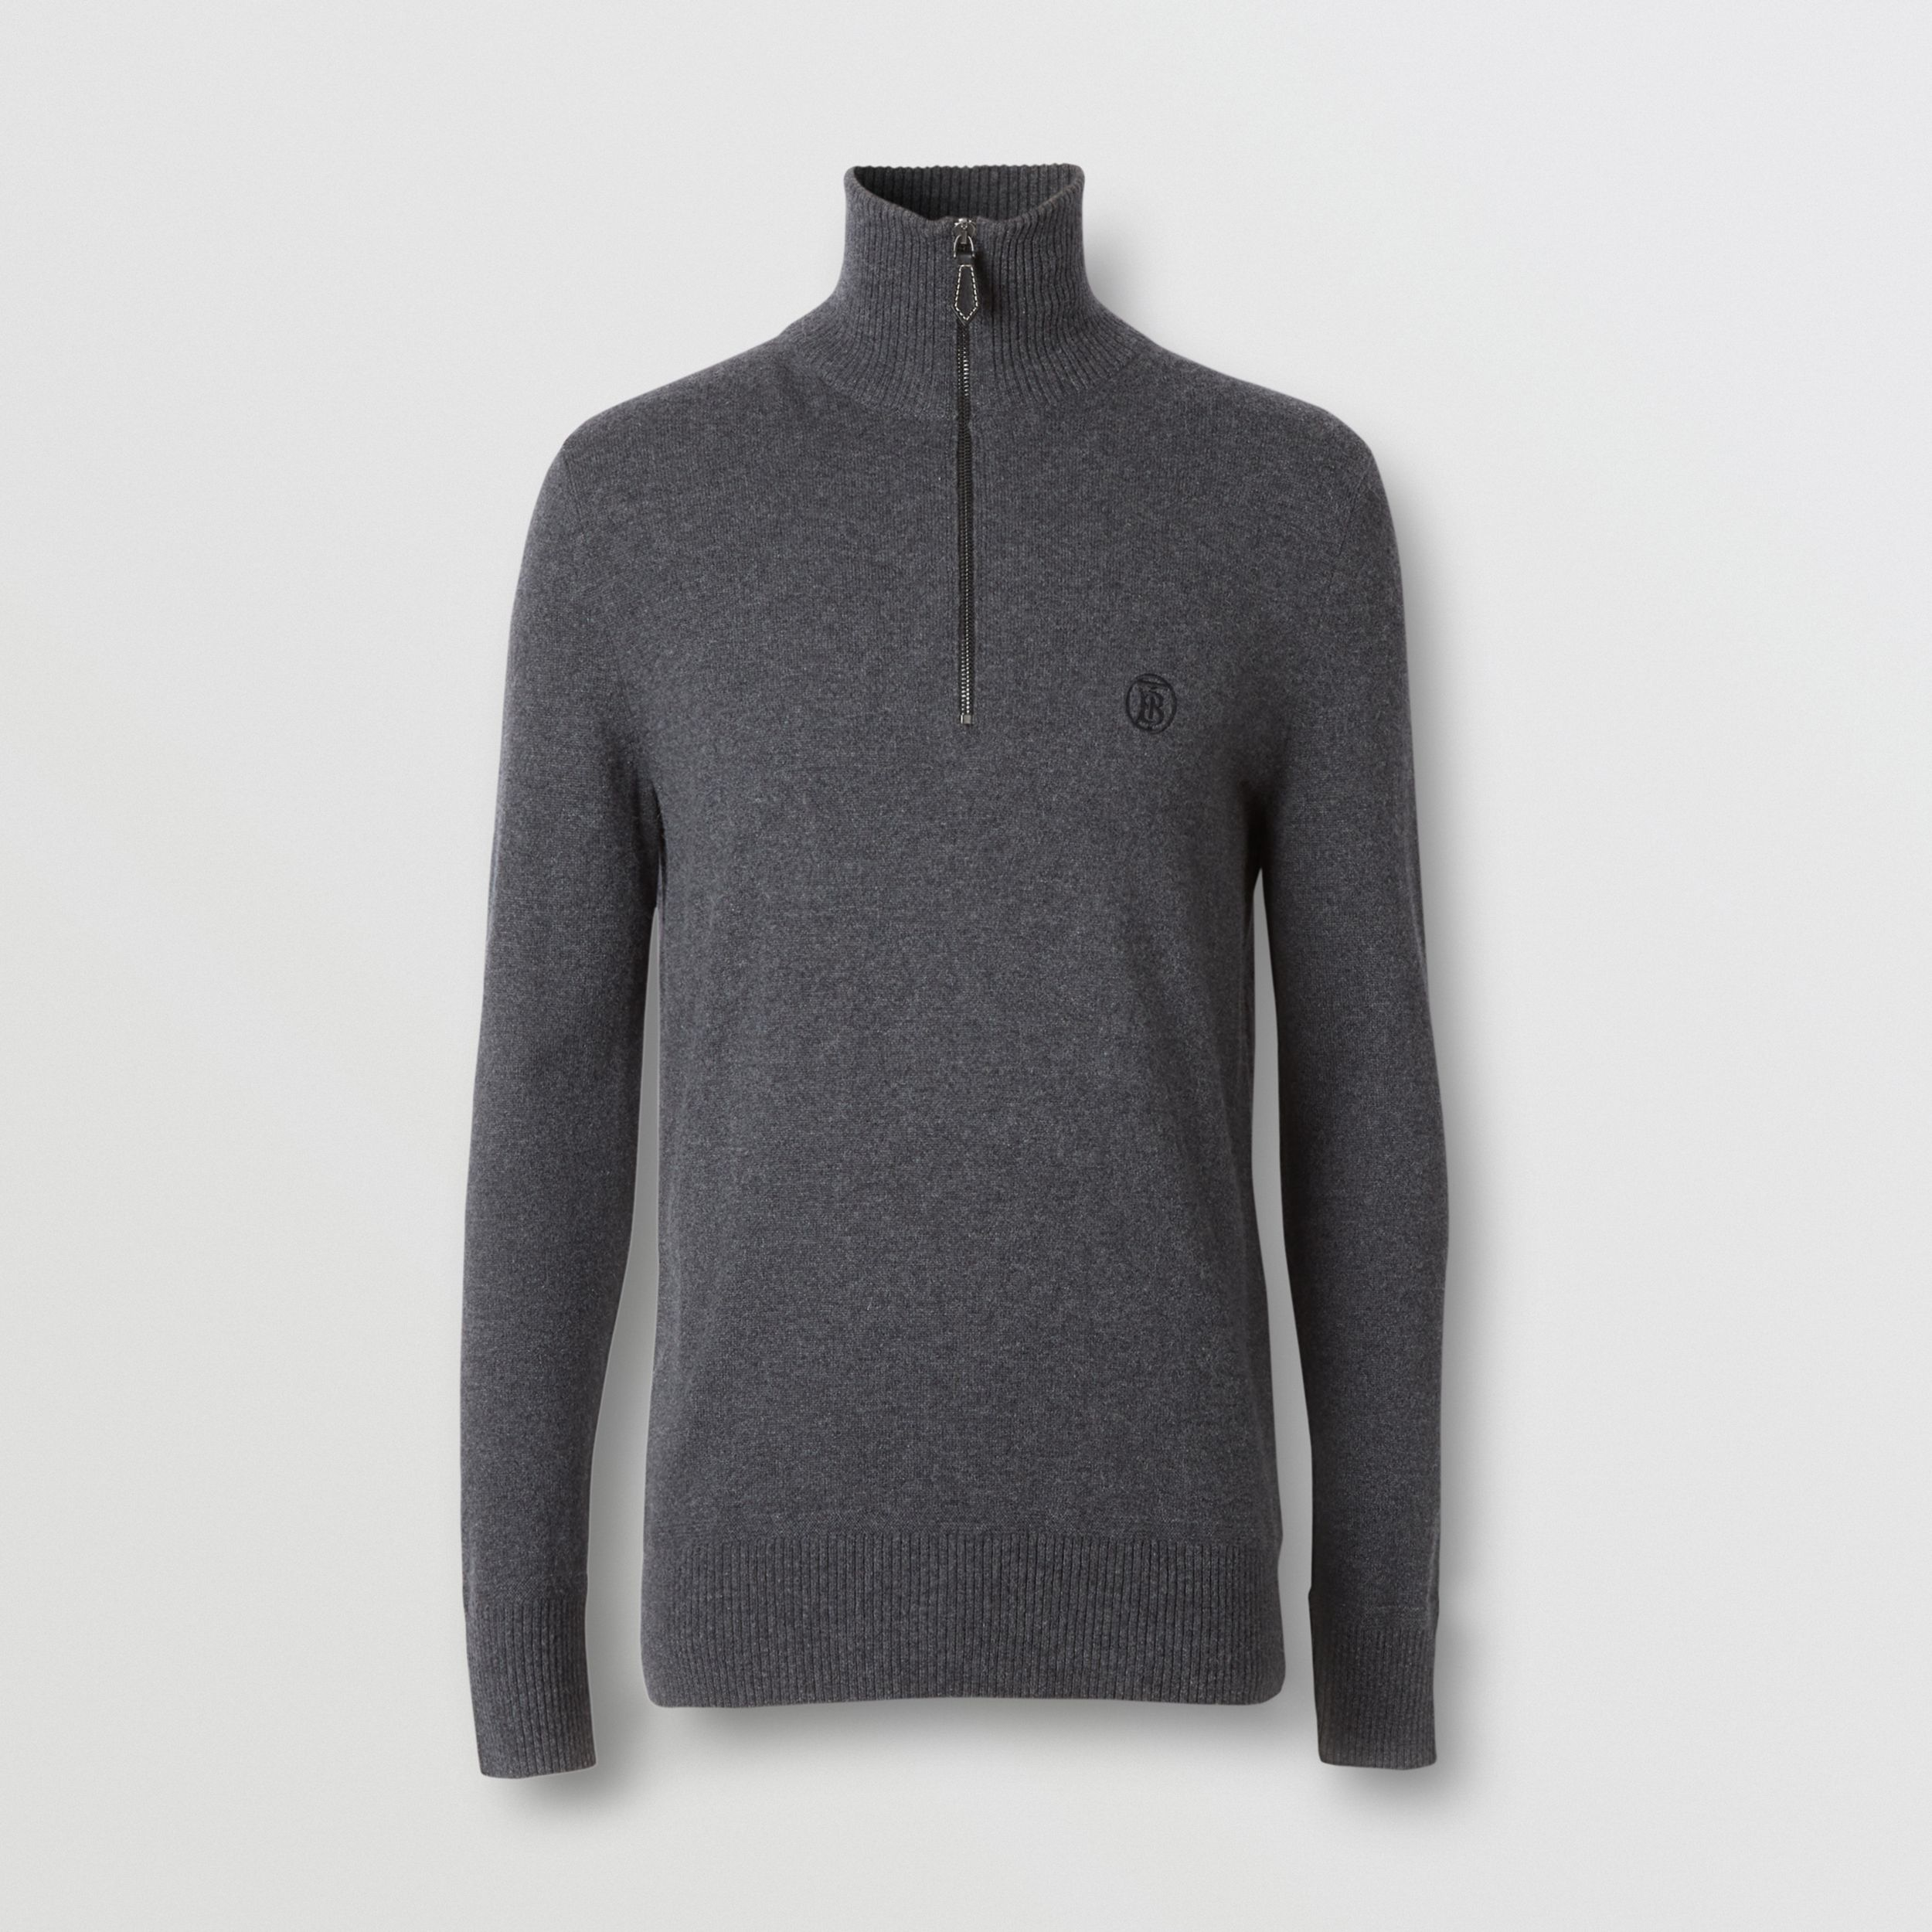 Monogram Motif Cashmere Funnel Neck Sweater in Steel Grey - Men | Burberry - 4